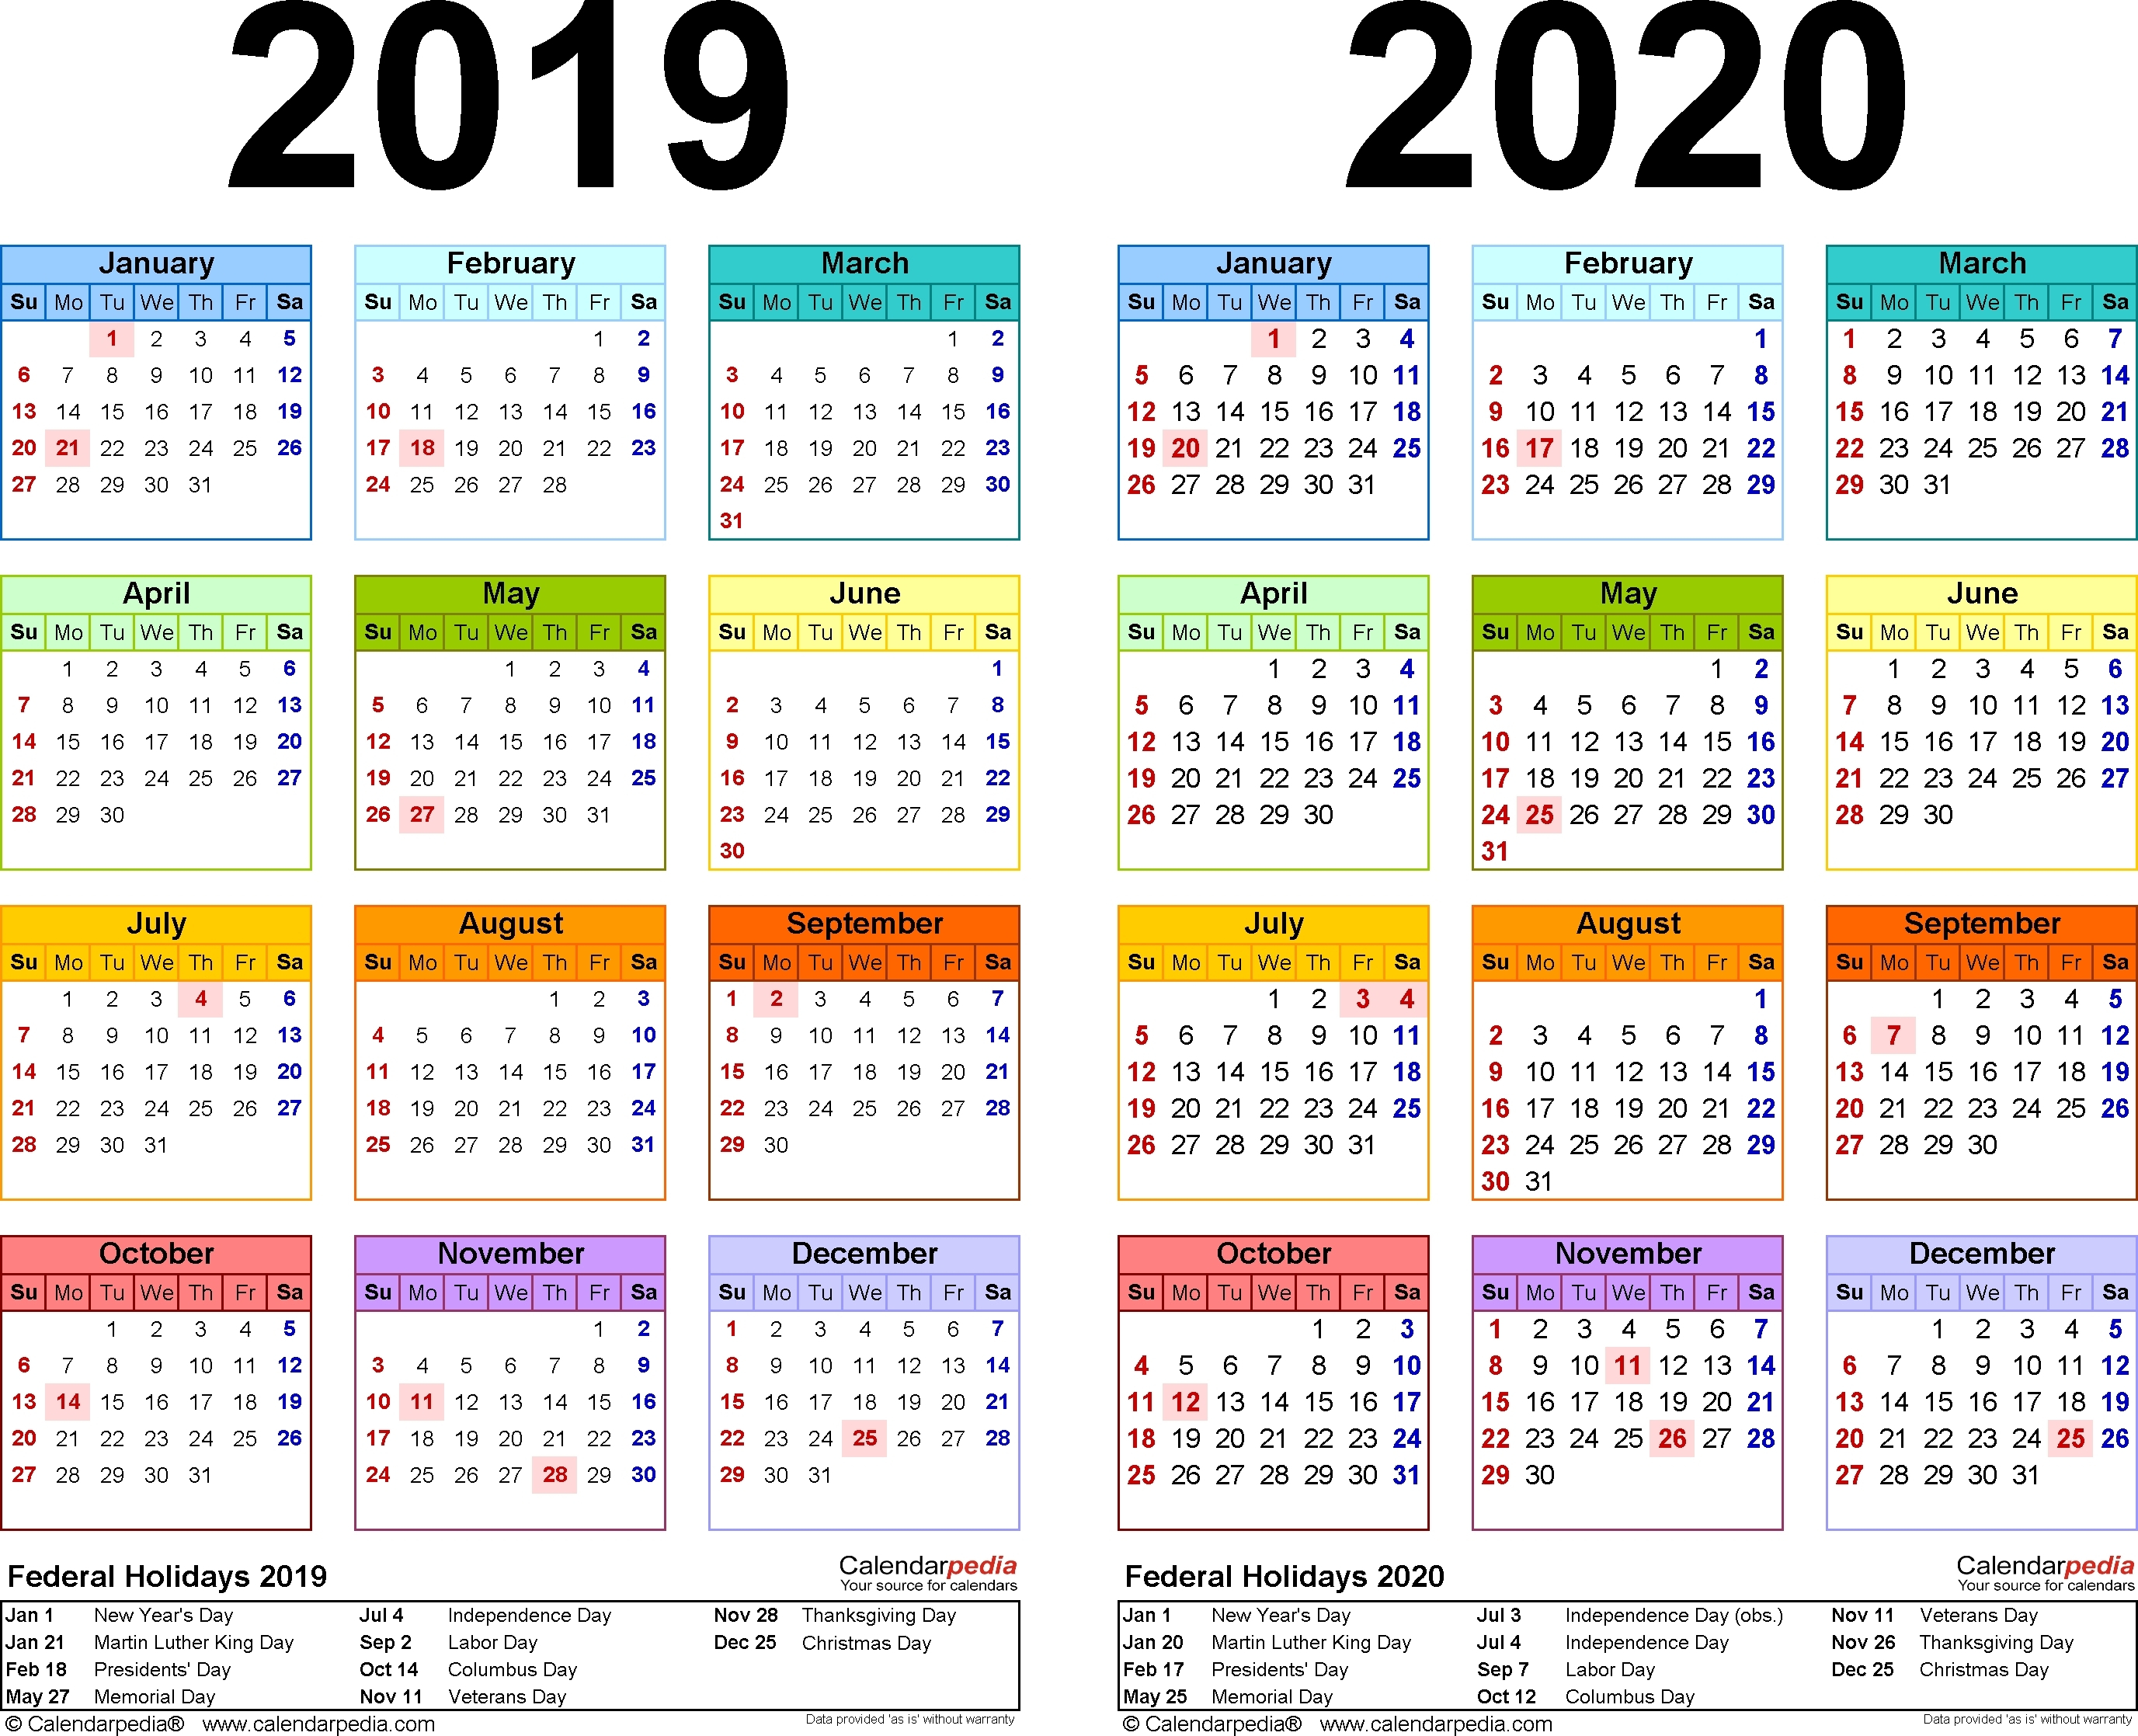 Nus 20192020 Academic Calendar  Calendar Inspiration Design with Nus 2020 Academic Calendar